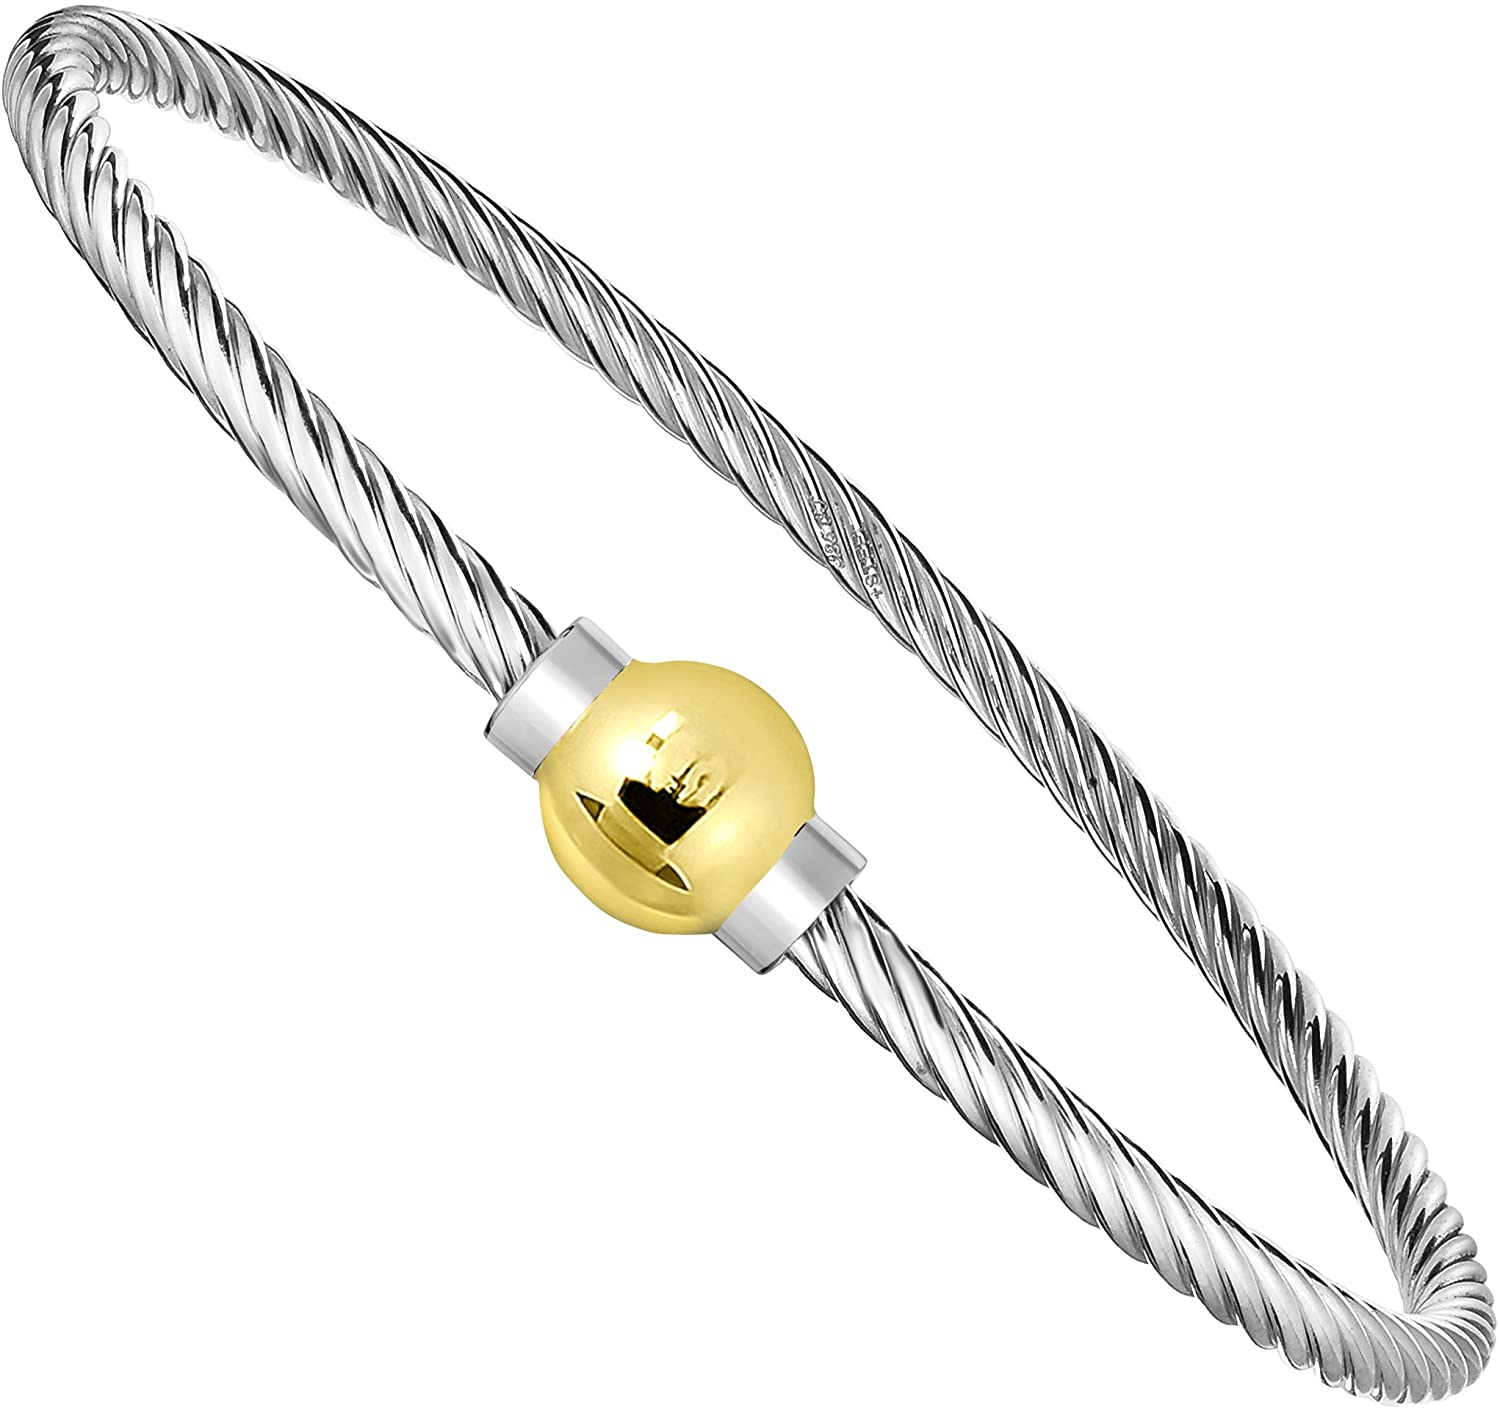 Unique Royal Jewelry Ocean Side Bracelet 925 Sterling Silver and 14K Solid Gold Ball Screw Twisted Bangle Bracelet.